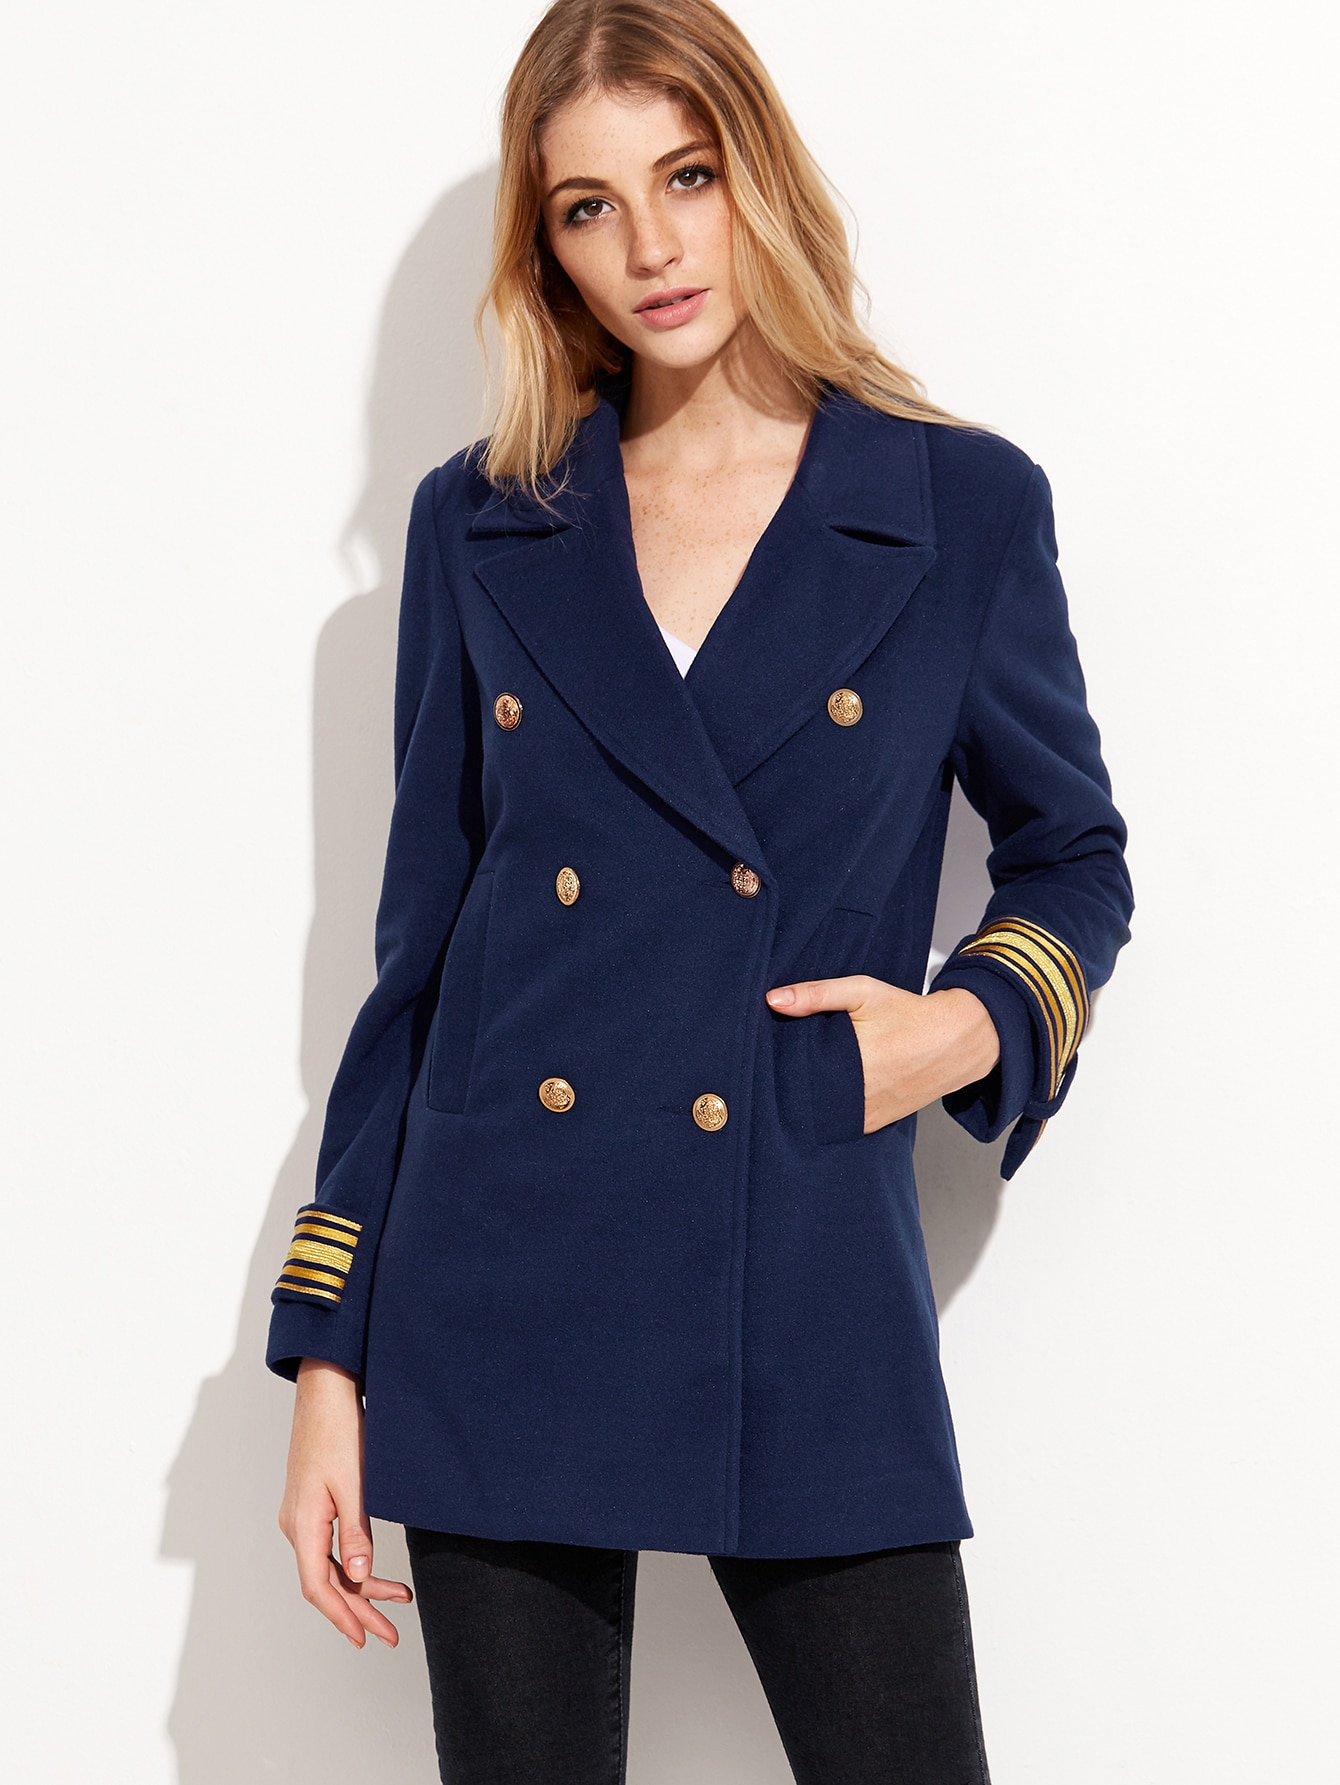 Navy Double Breasted Striped Cuff Sailor BlazerNavy Double Breasted Striped Cuff Sailor Blazer<br><br>color: Navy<br>size: M,S,XS